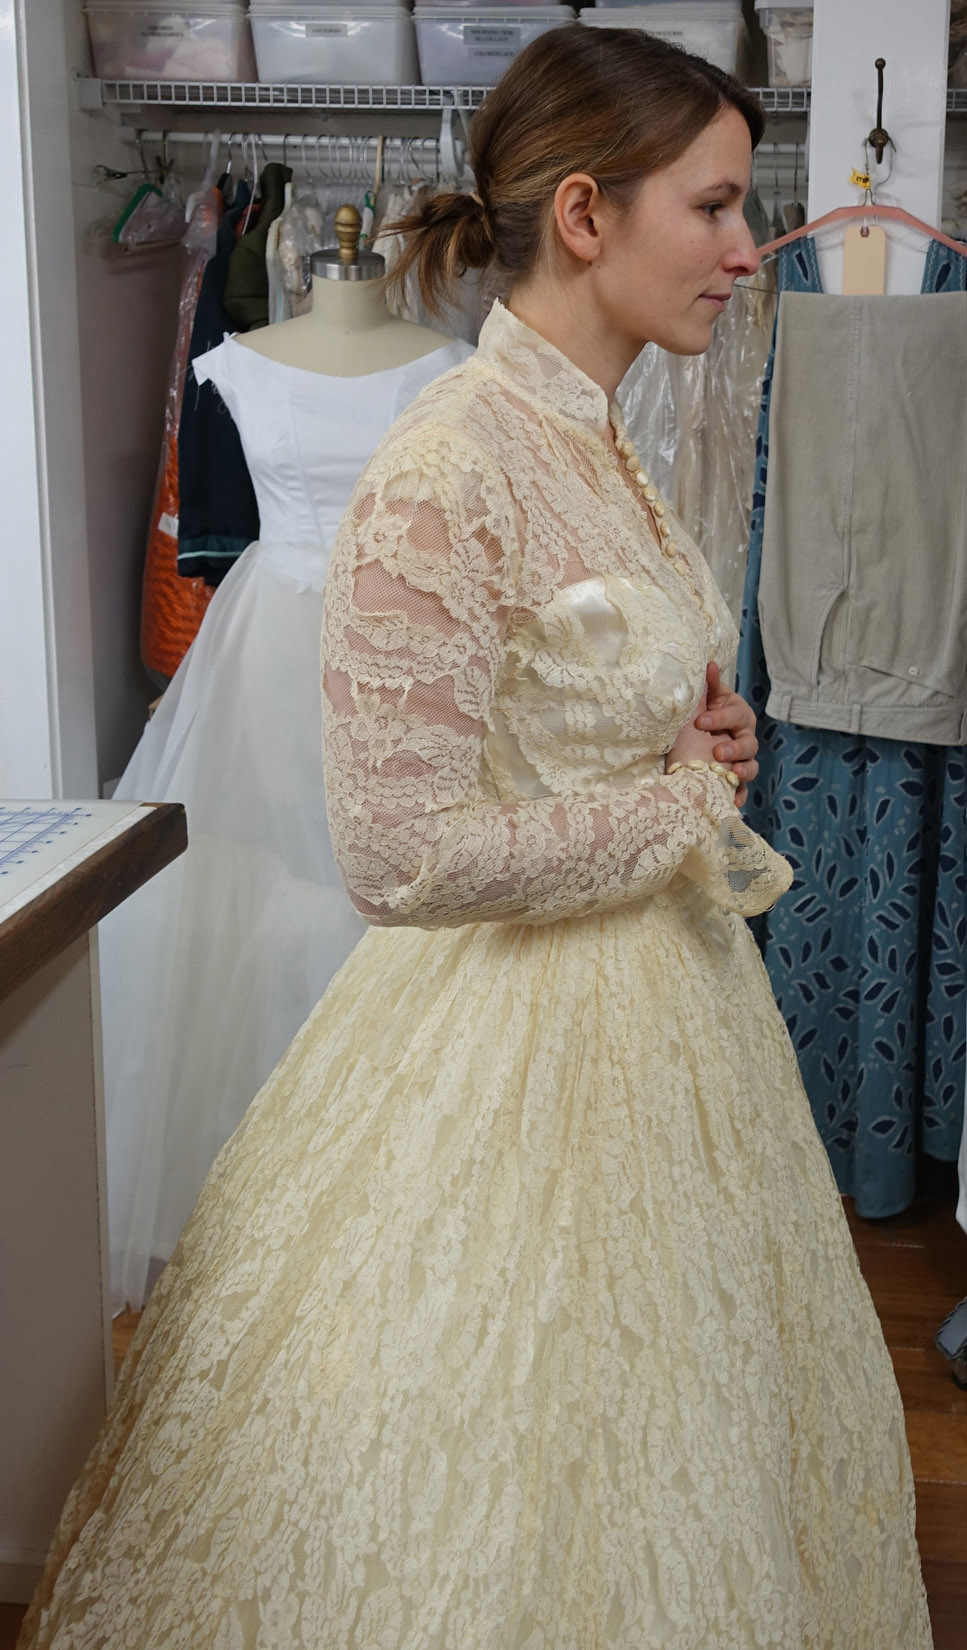 Antique Lace Gown Before Restoration